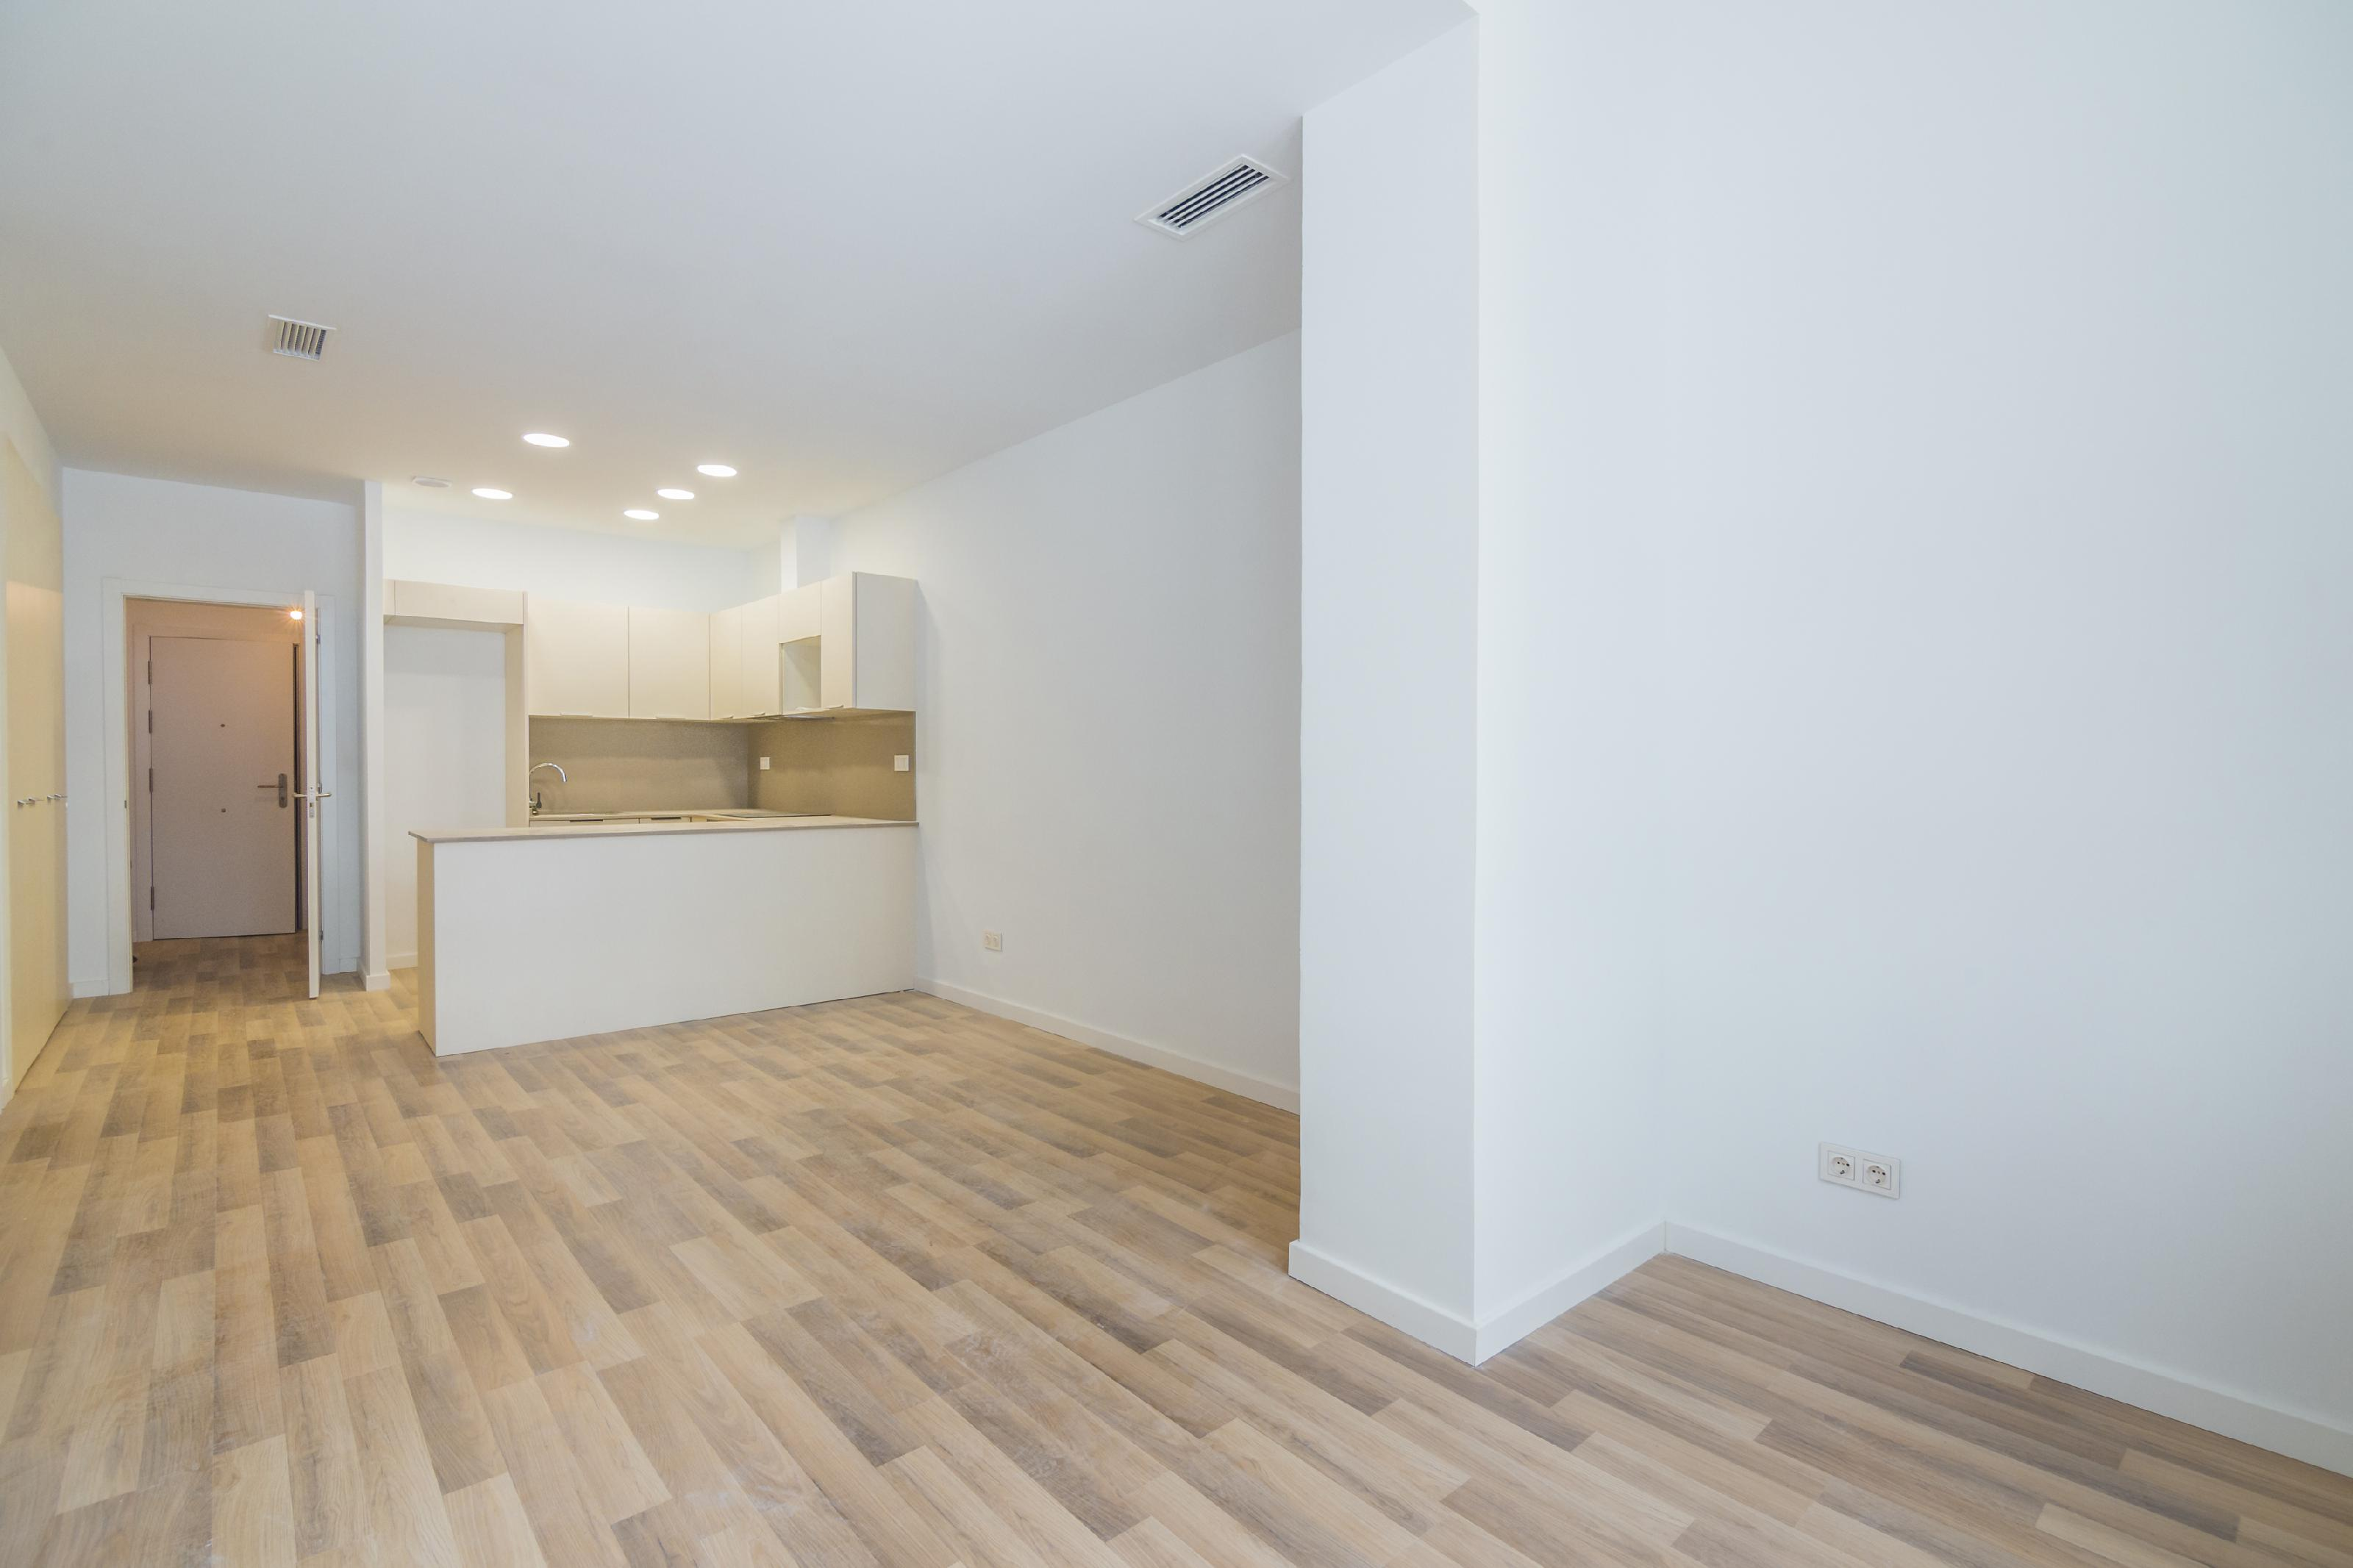 220652 Apartment for sale in Sarrià-Sant Gervasi, Sant Gervasi-Galvany 6